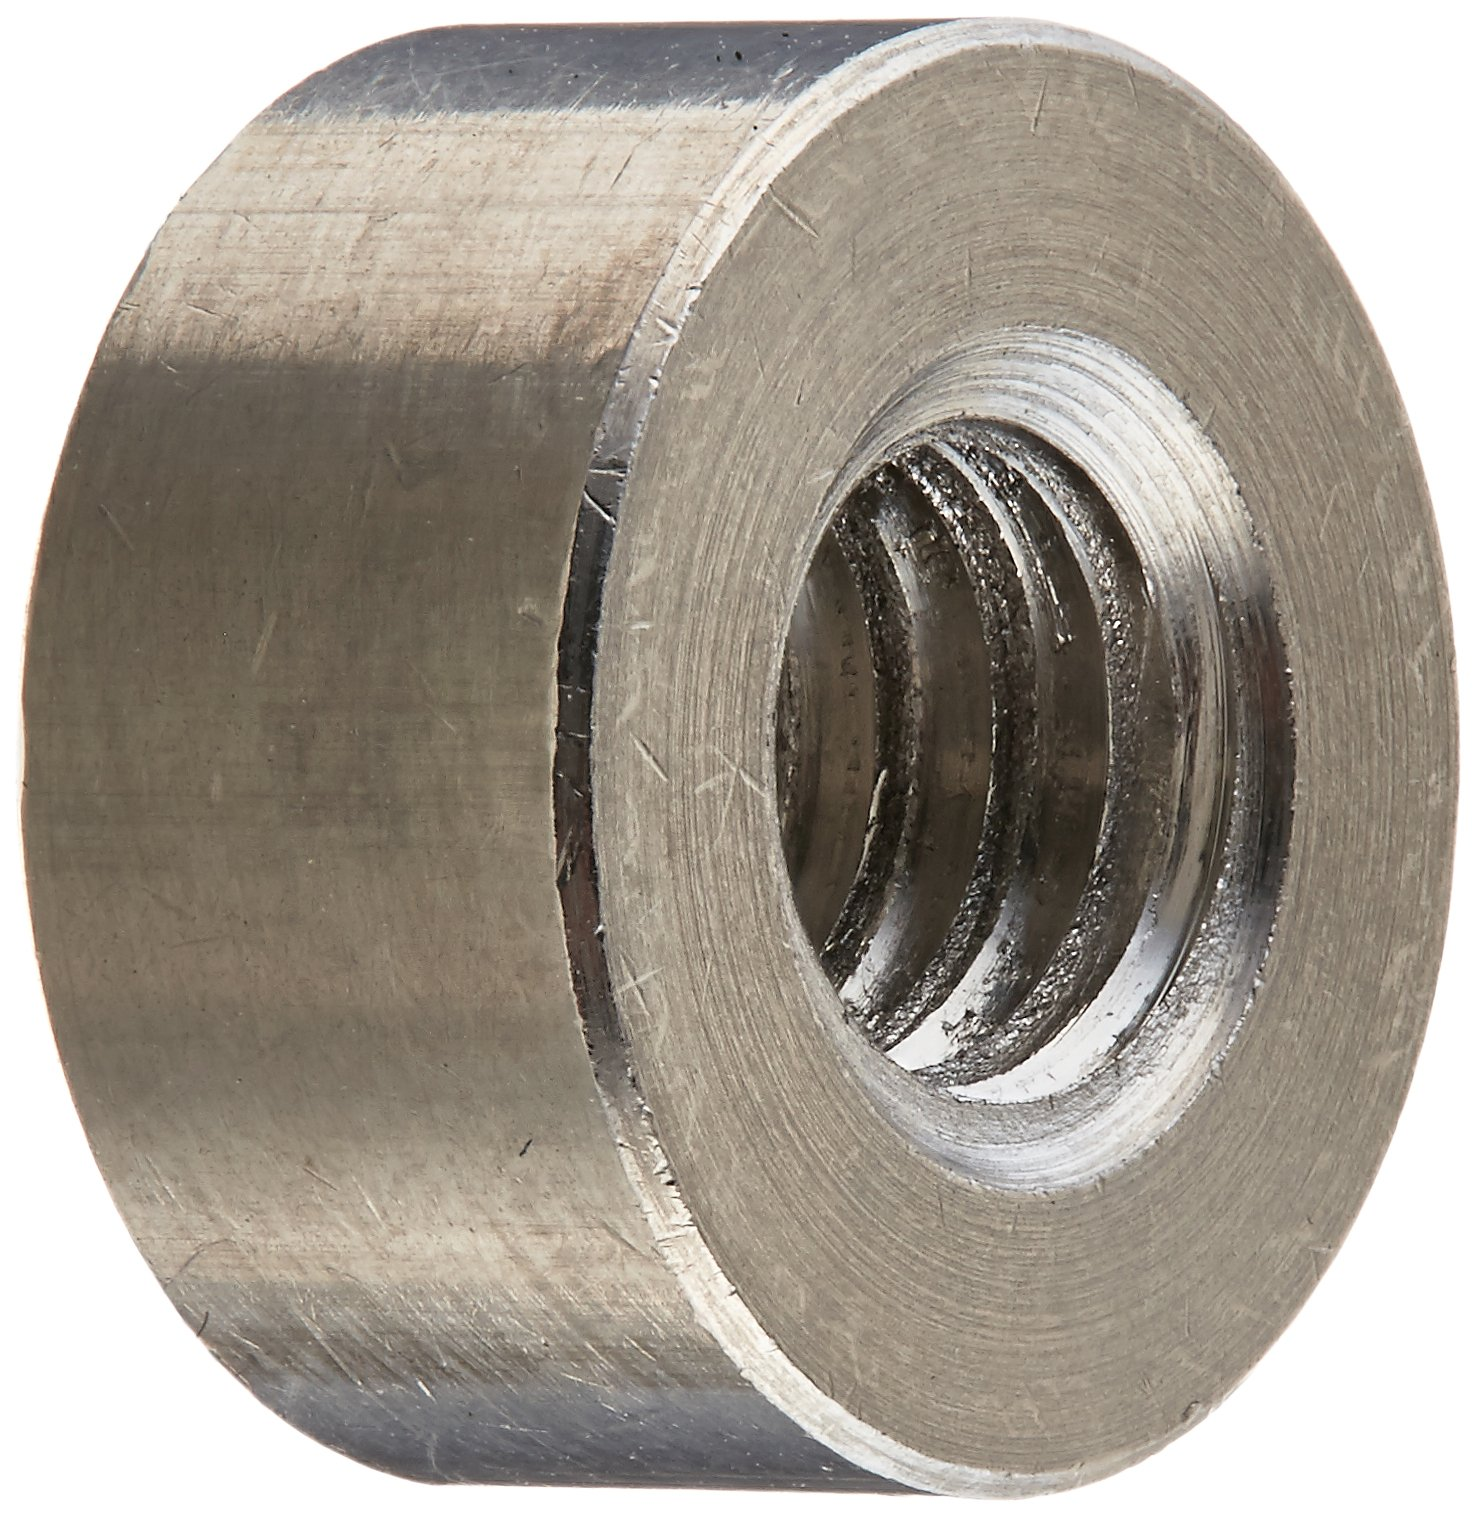 Round Standoff, Stainless Steel, Female, 1/4''-20 Screw Size, 0.5'' OD, 0.25'' Length, (Pack of 10)